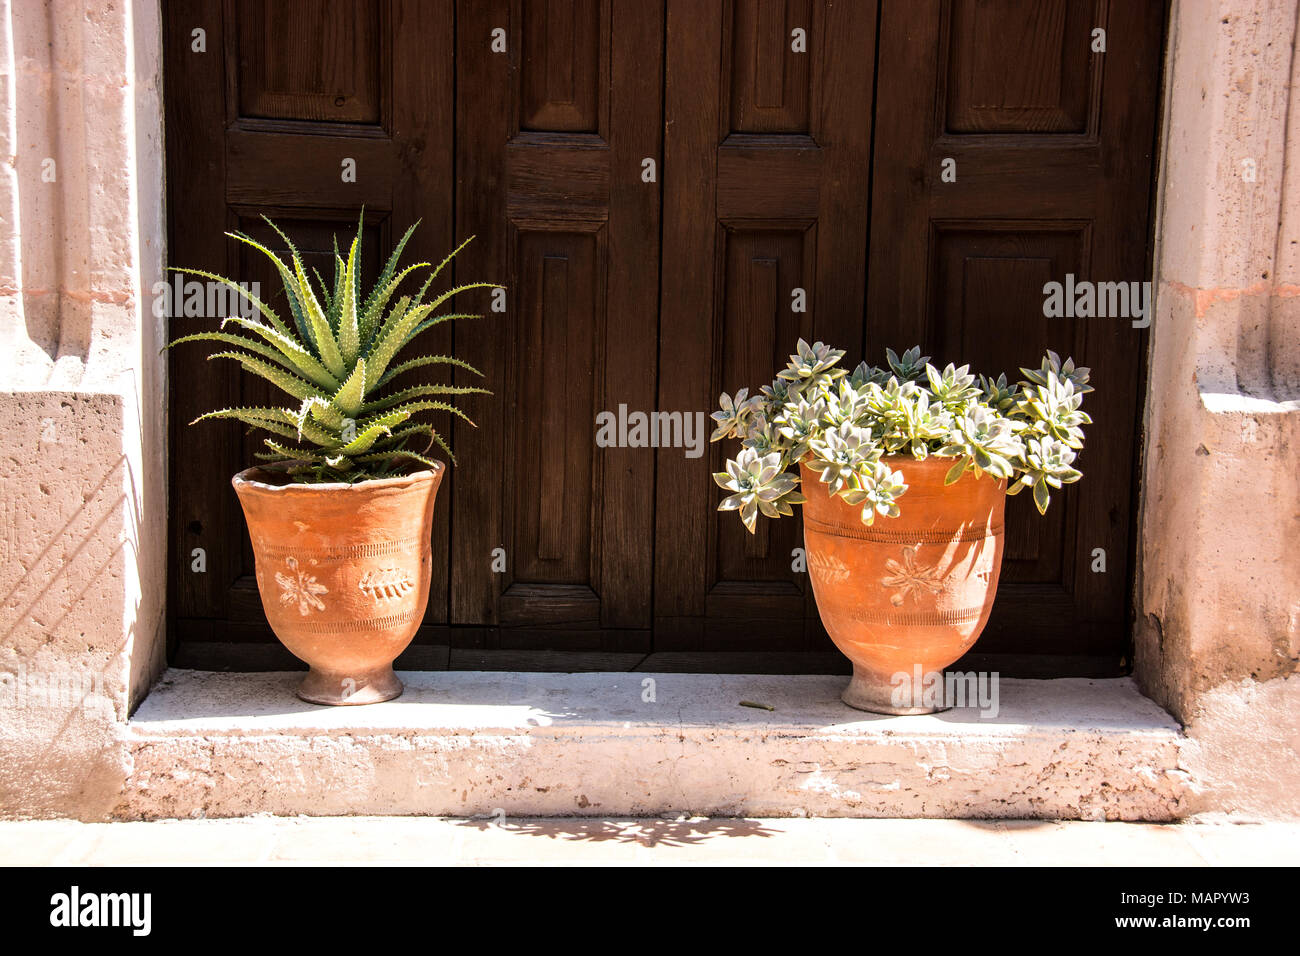 Two pots with succulents in the front of someones home on a street in the city of Aguascalientes, Mexico. - Stock Image